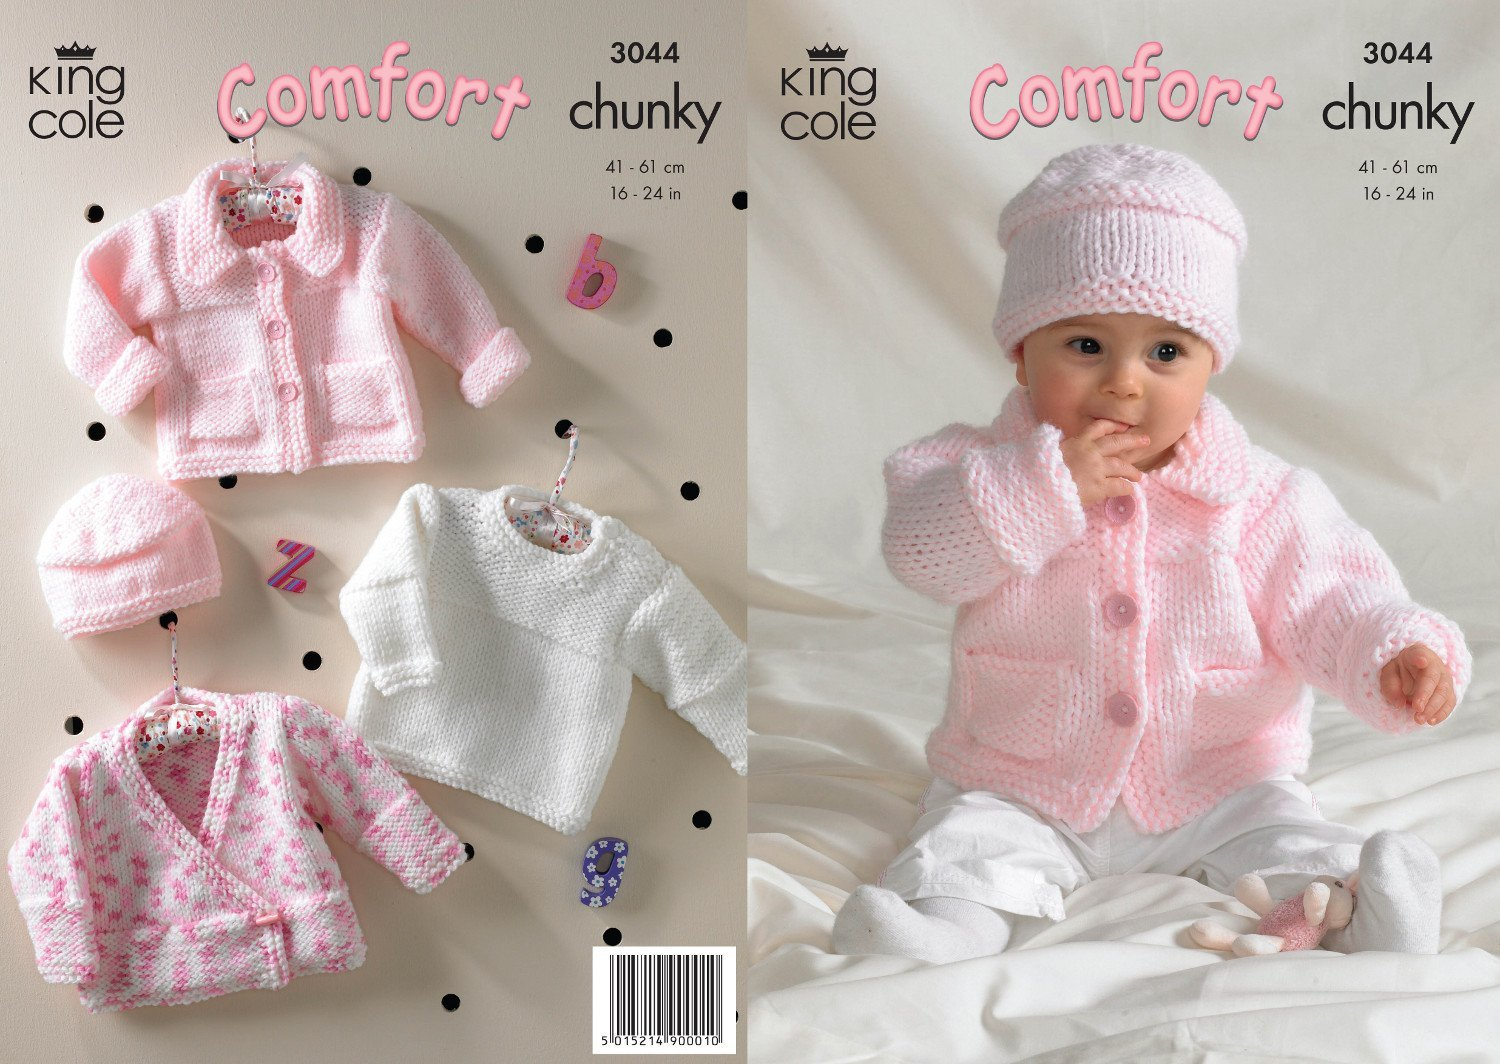 King Cole Knitting Pattern 3044 : Baby/Toddler Chunky Jacket ...